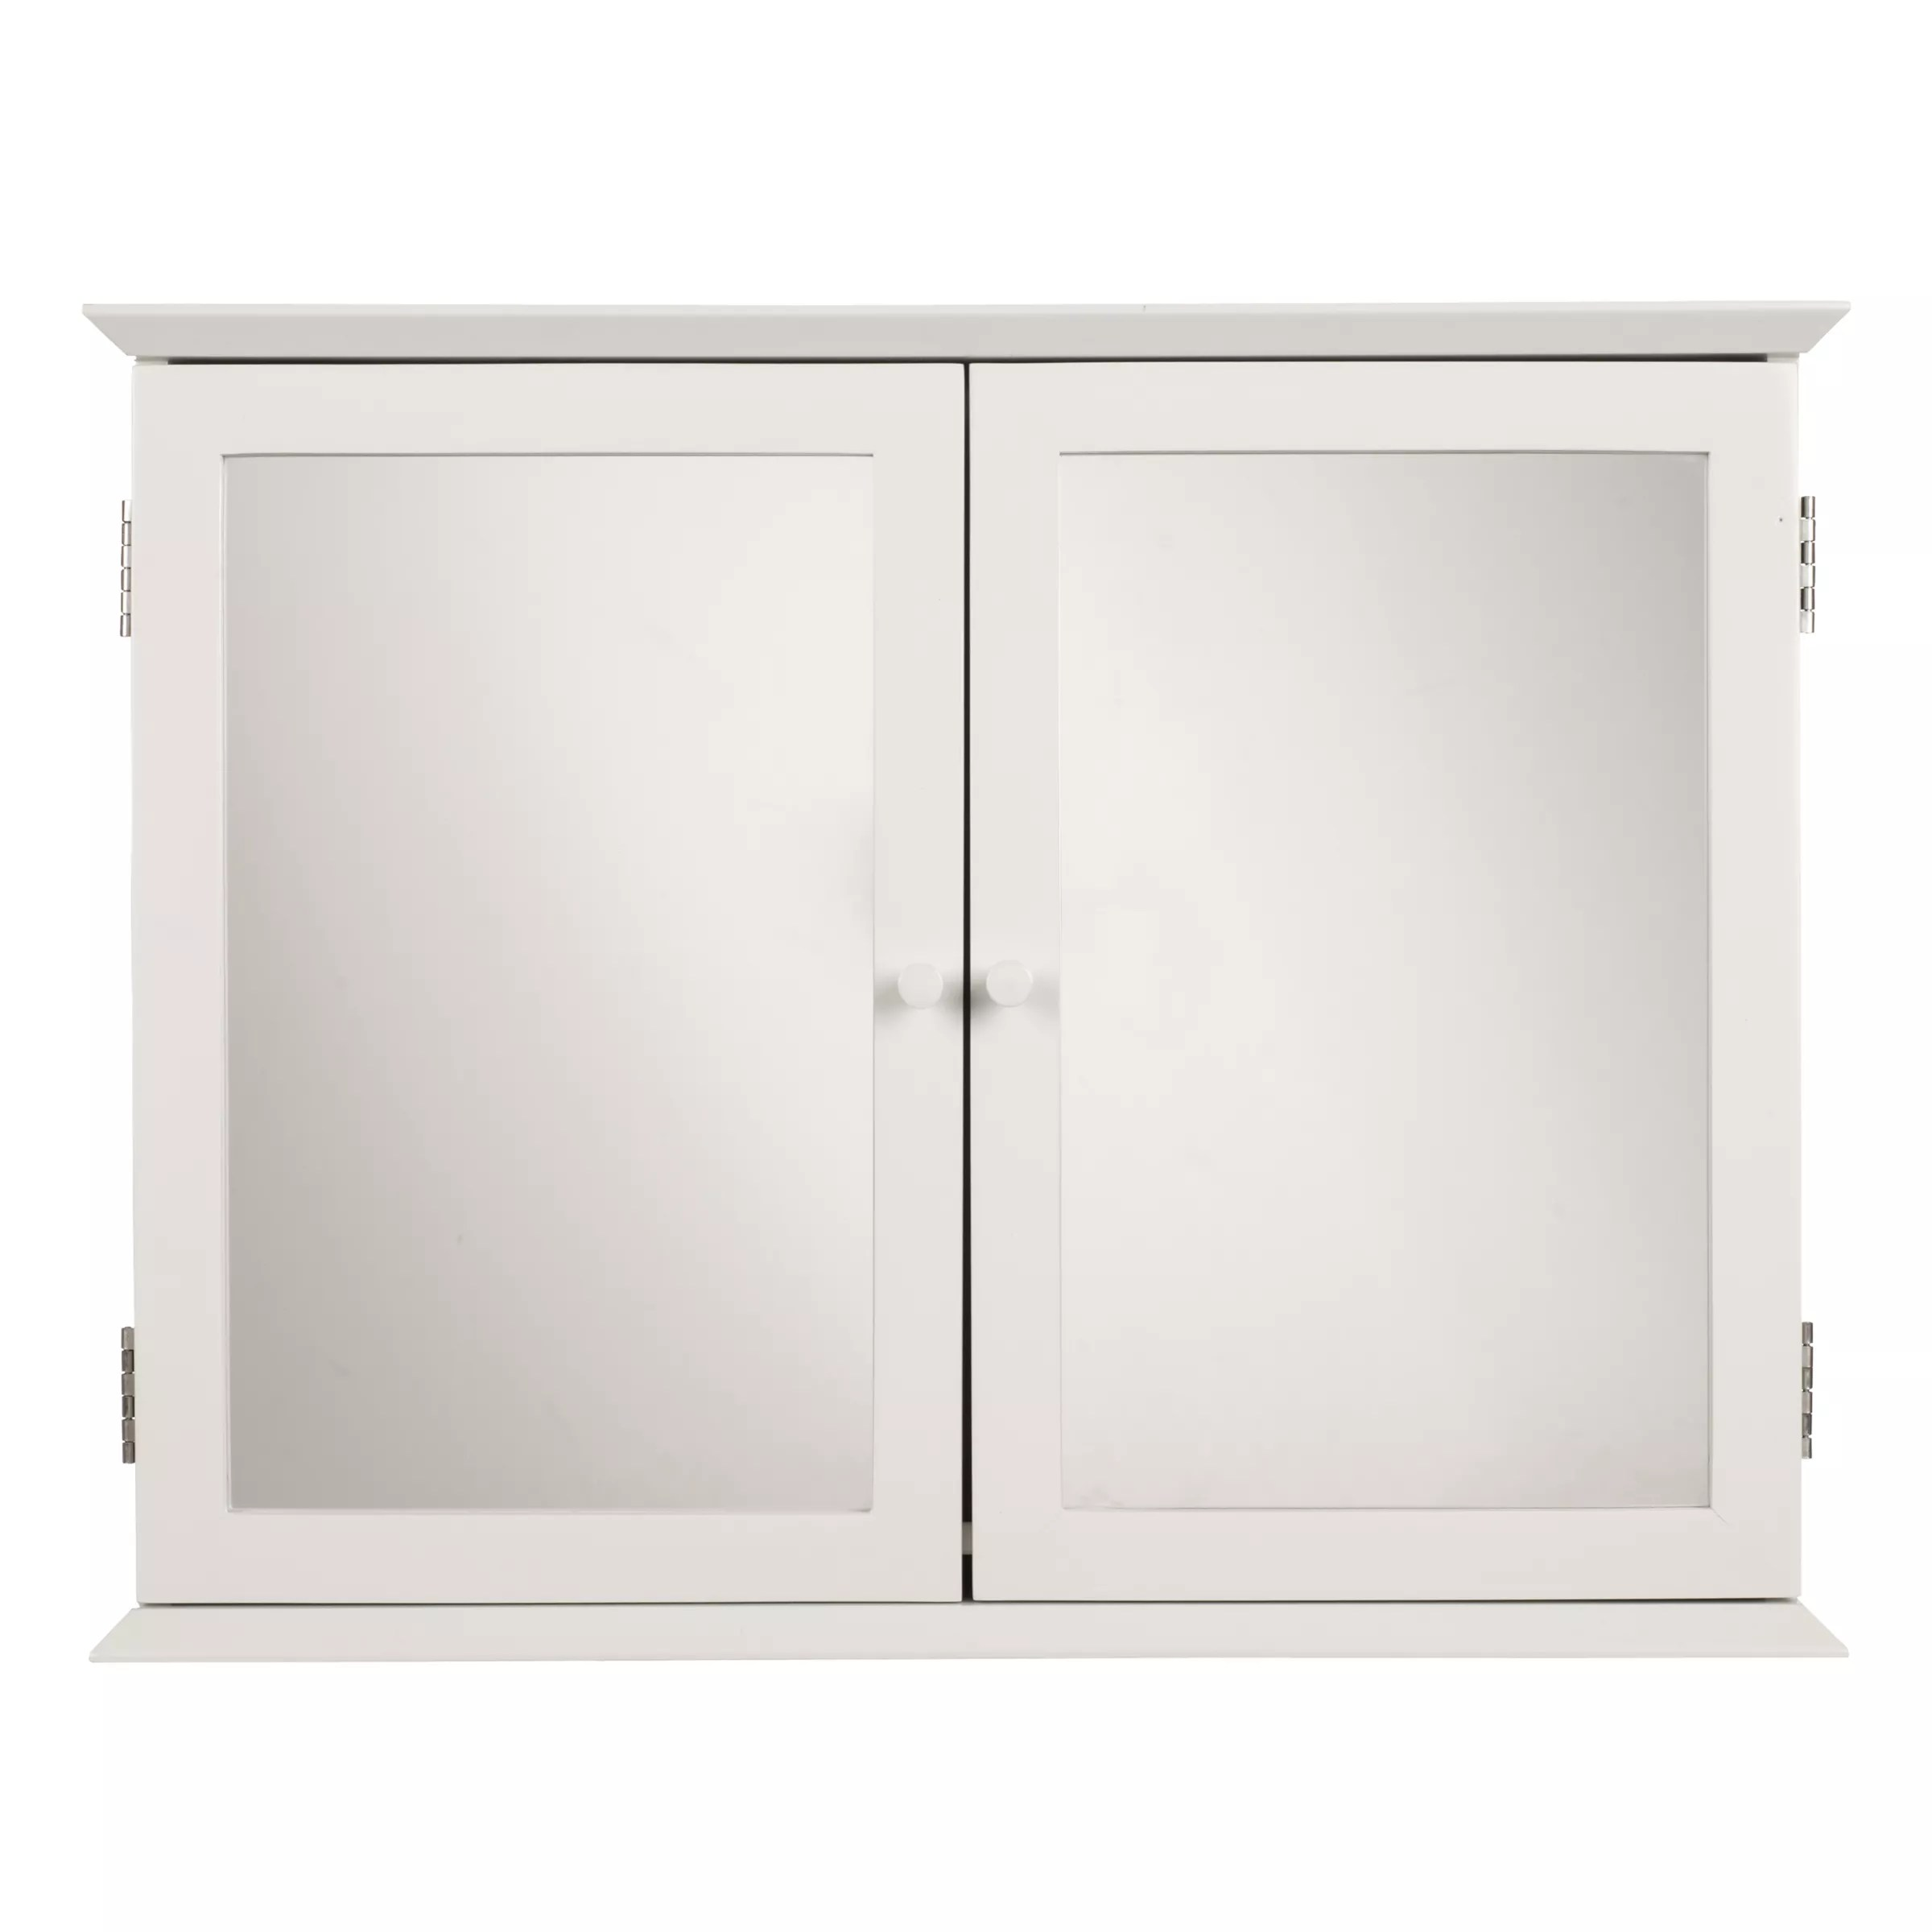 Mirrored Bathroom Cupboard John Lewis Partners St Ives Double Mirrored Bathroom Cabinet